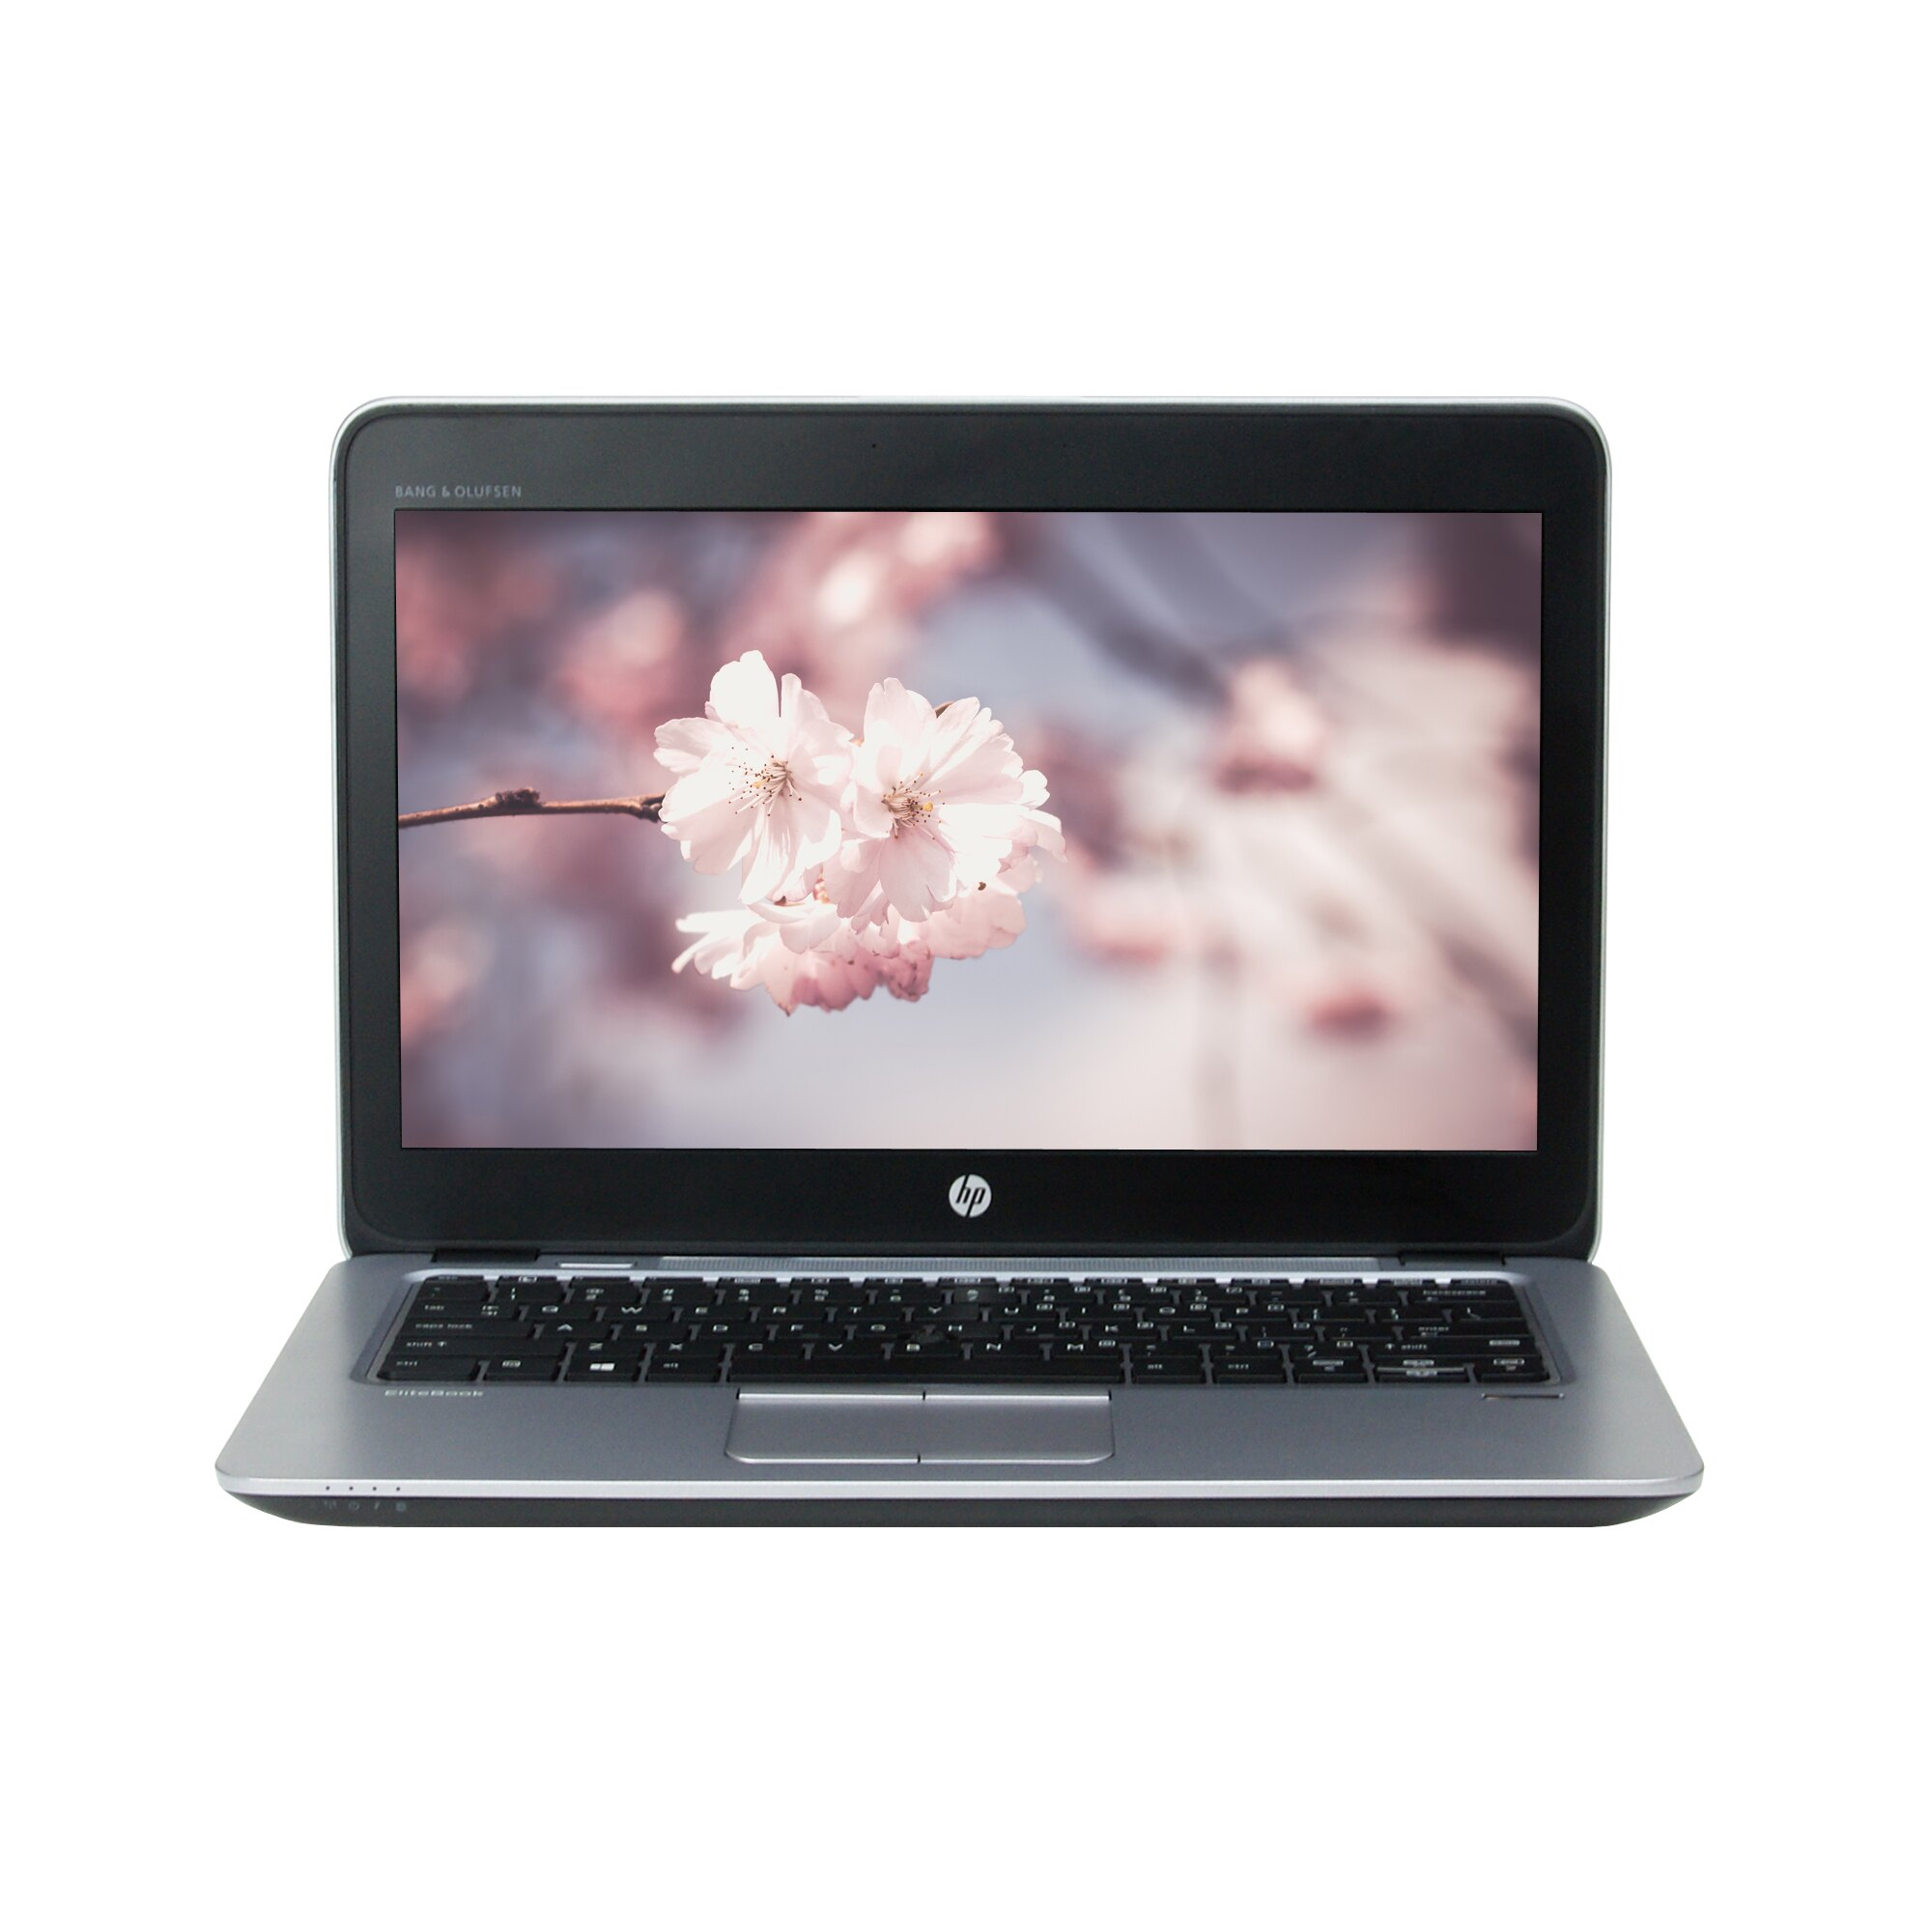 (B GRADE) HP EliteBook 820 G3 Intel Core i5-6300U 2 4GHz, 8GB RAM, 240GB  SSD, 12 5